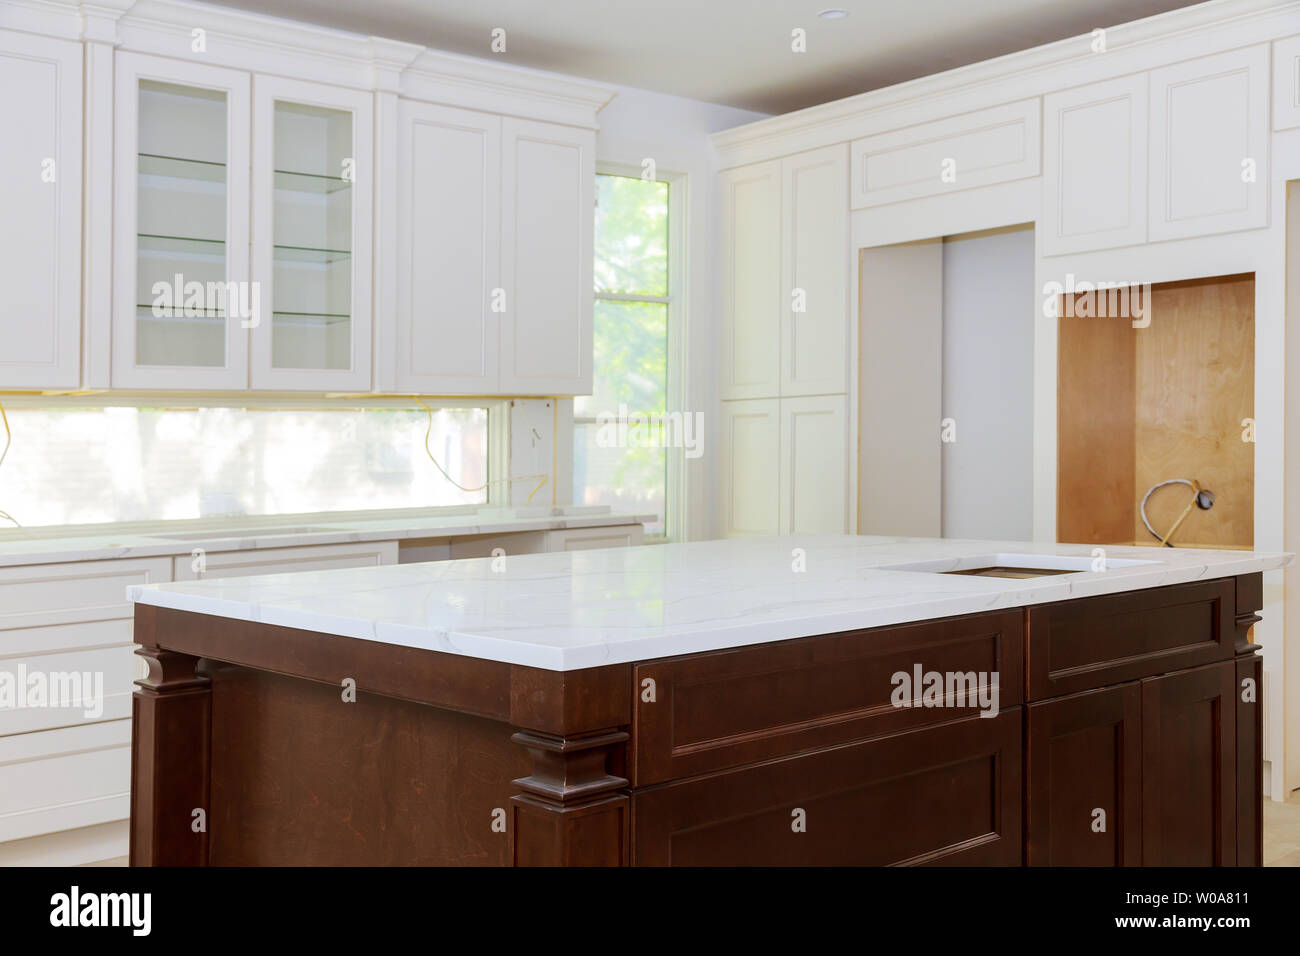 White Of Kitchen Wooden Cabinets With Contemporary Look Of